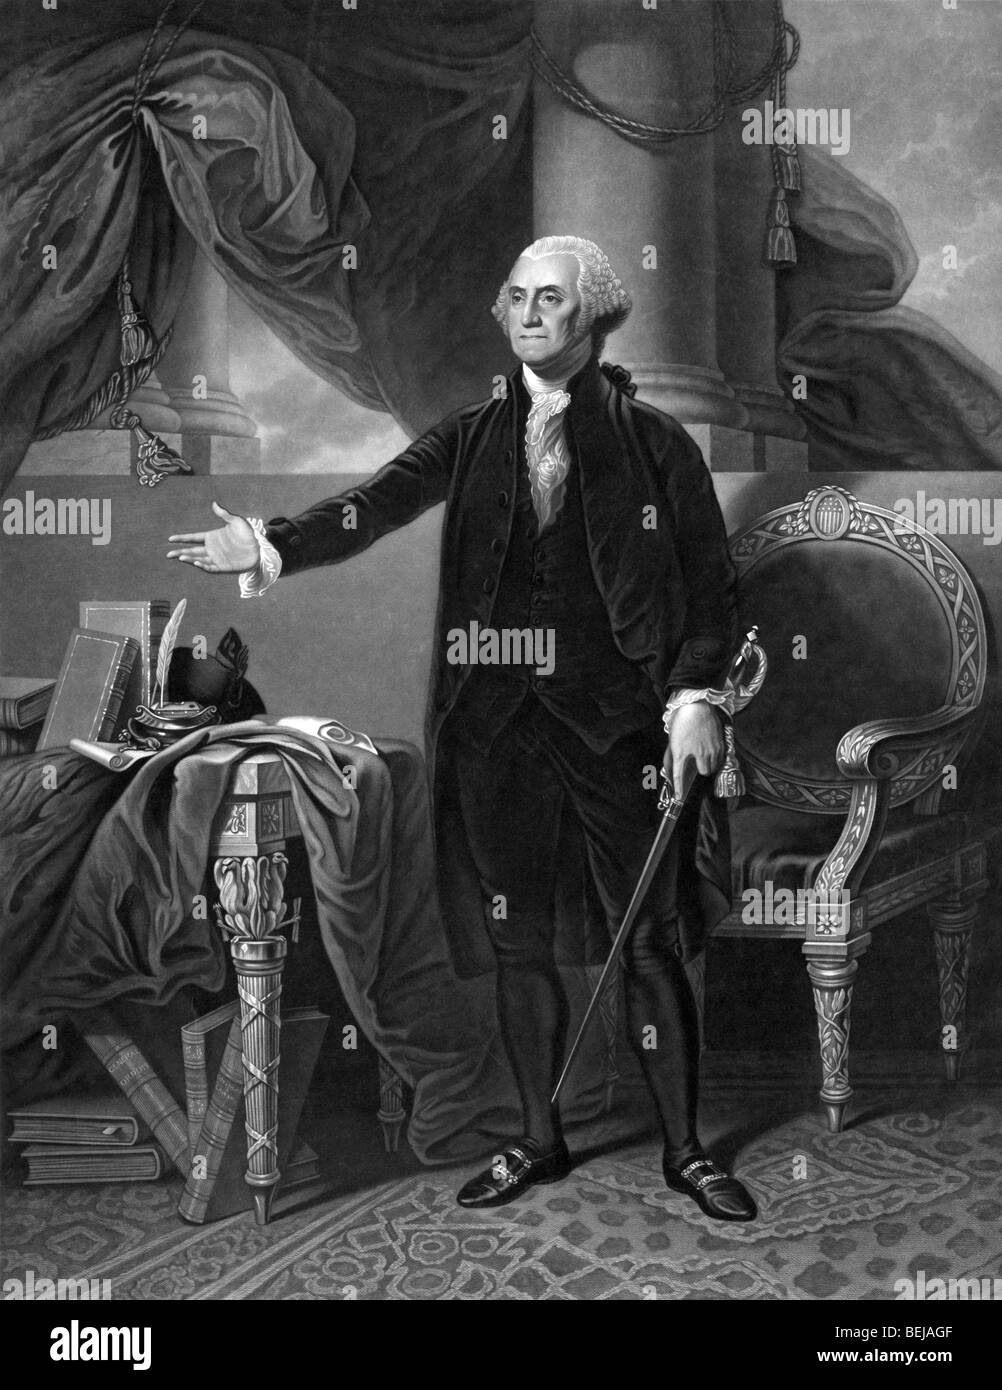 Portrait print circa 1844 of George Washington - the first President of the United States of America (1789 - 1797). Stock Photo